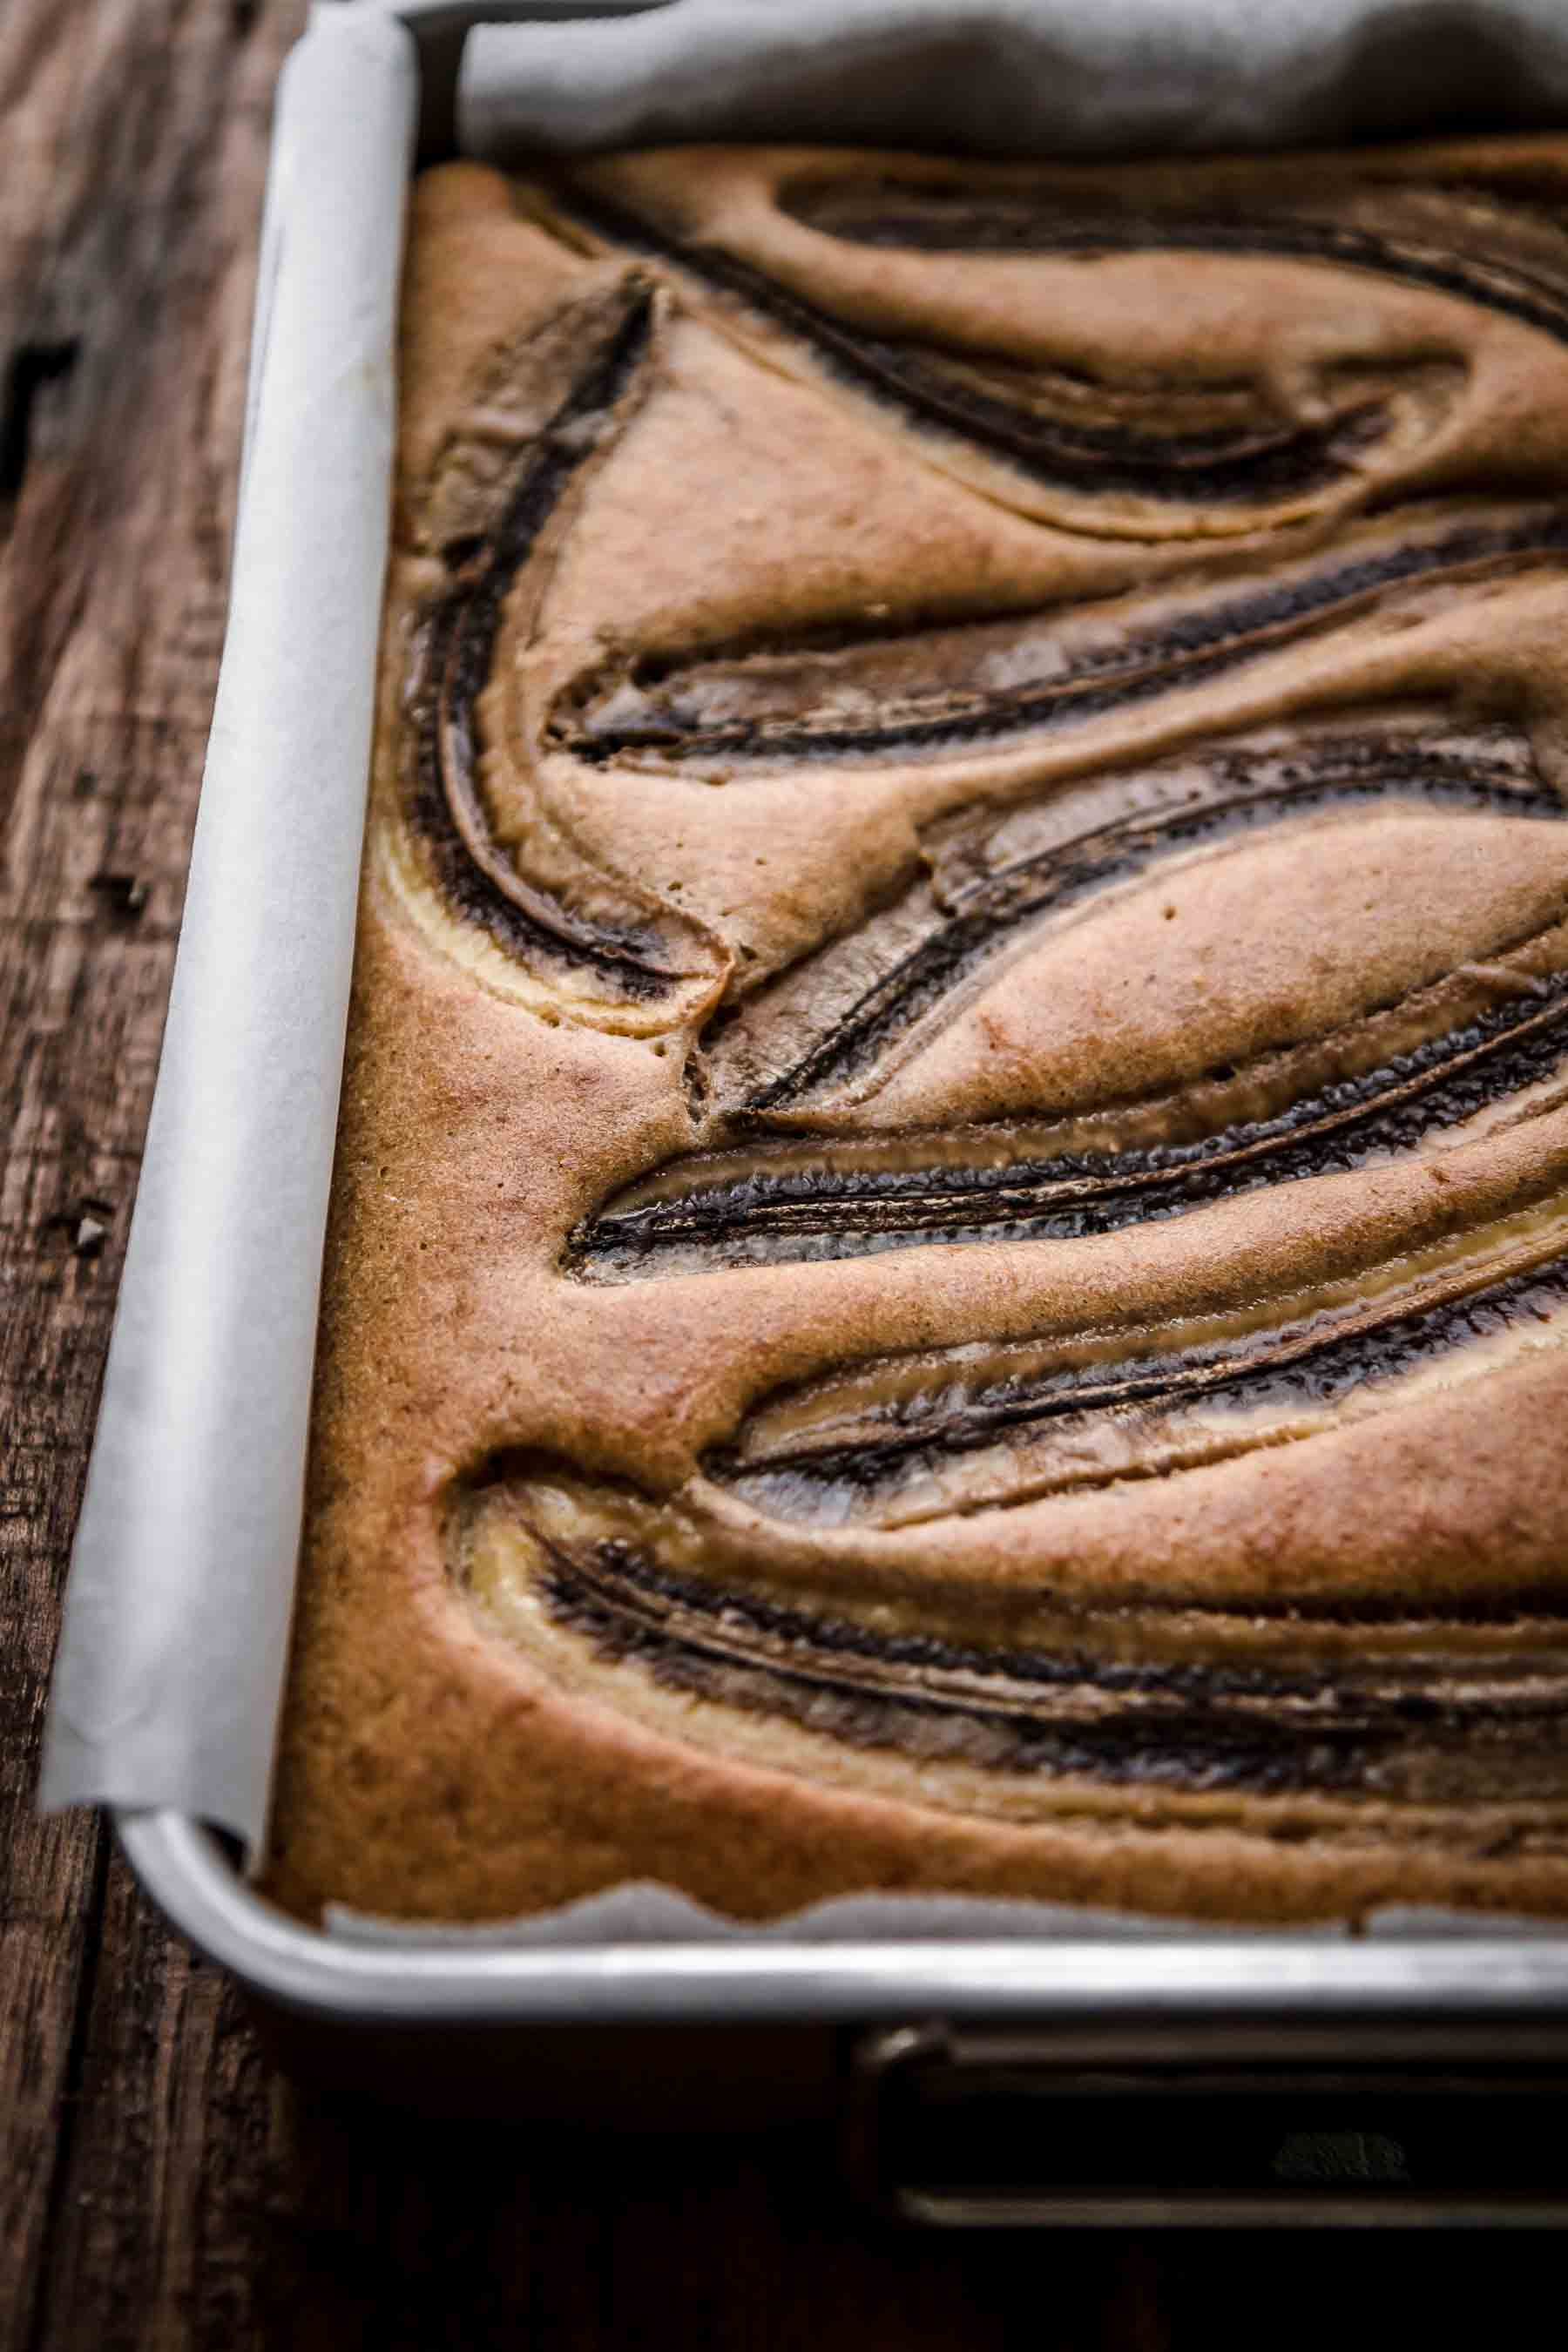 Baked banana cake in baking pan